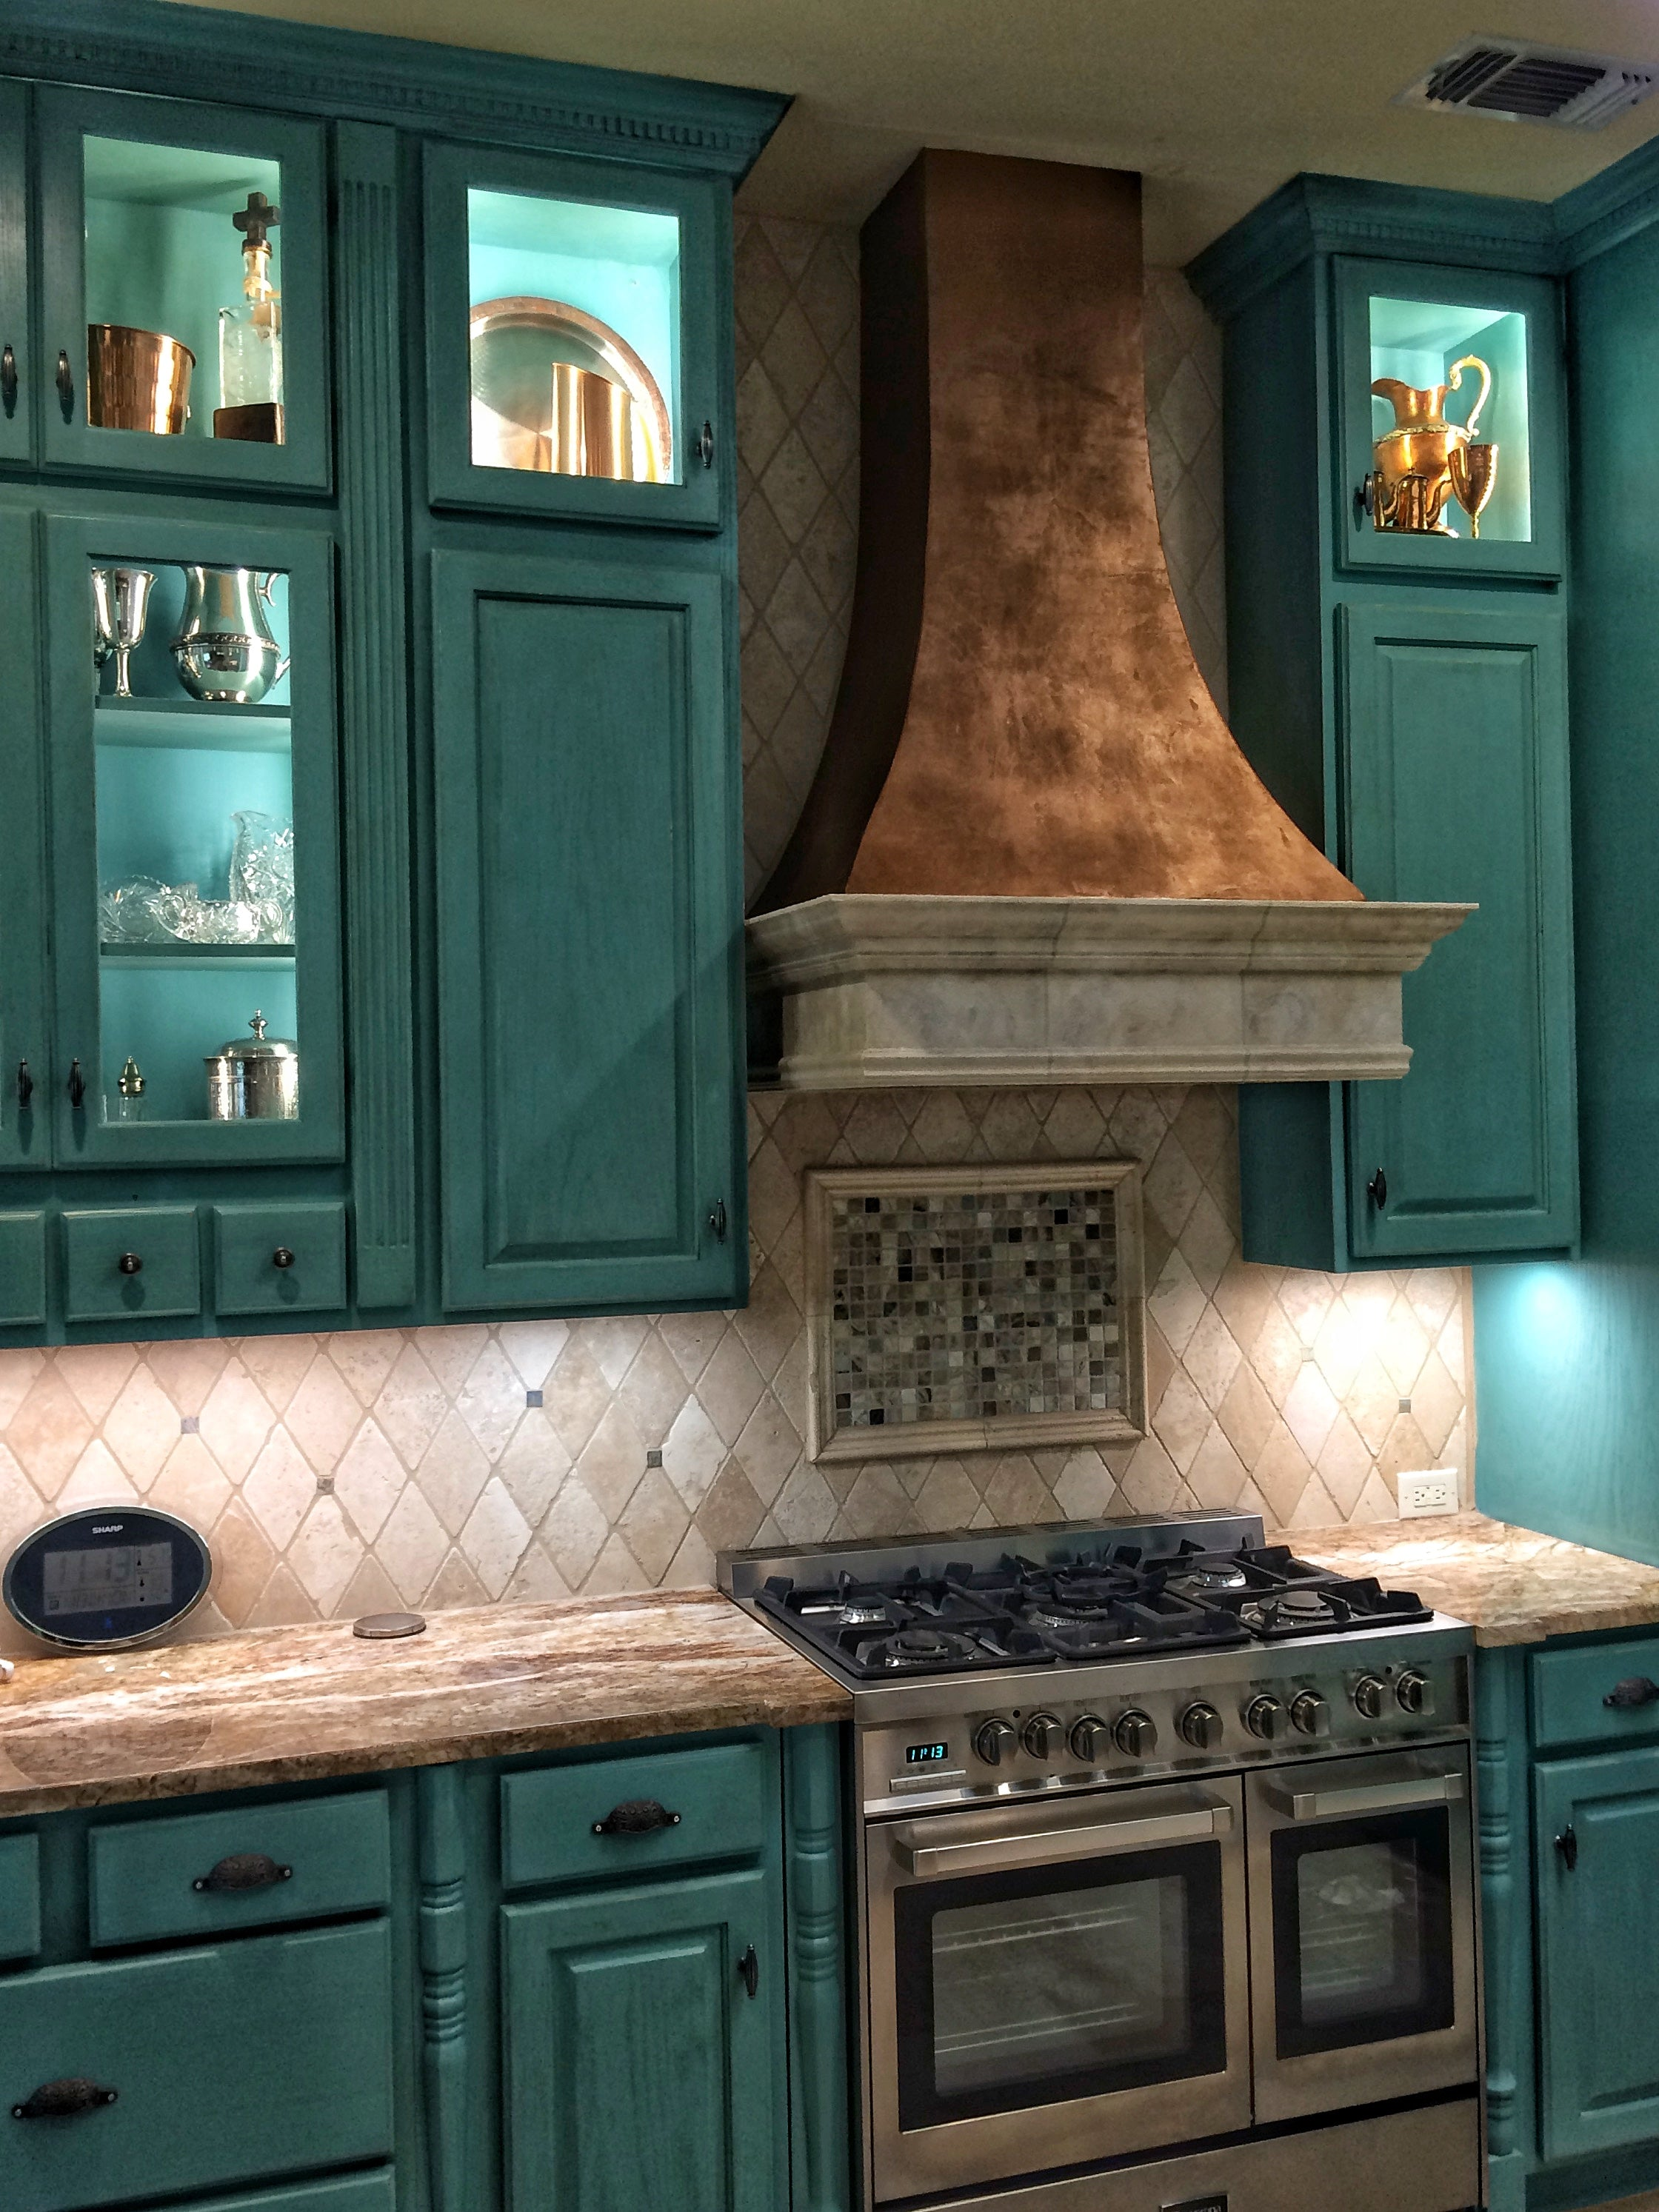 Custom Cabinetry and Stove Hood